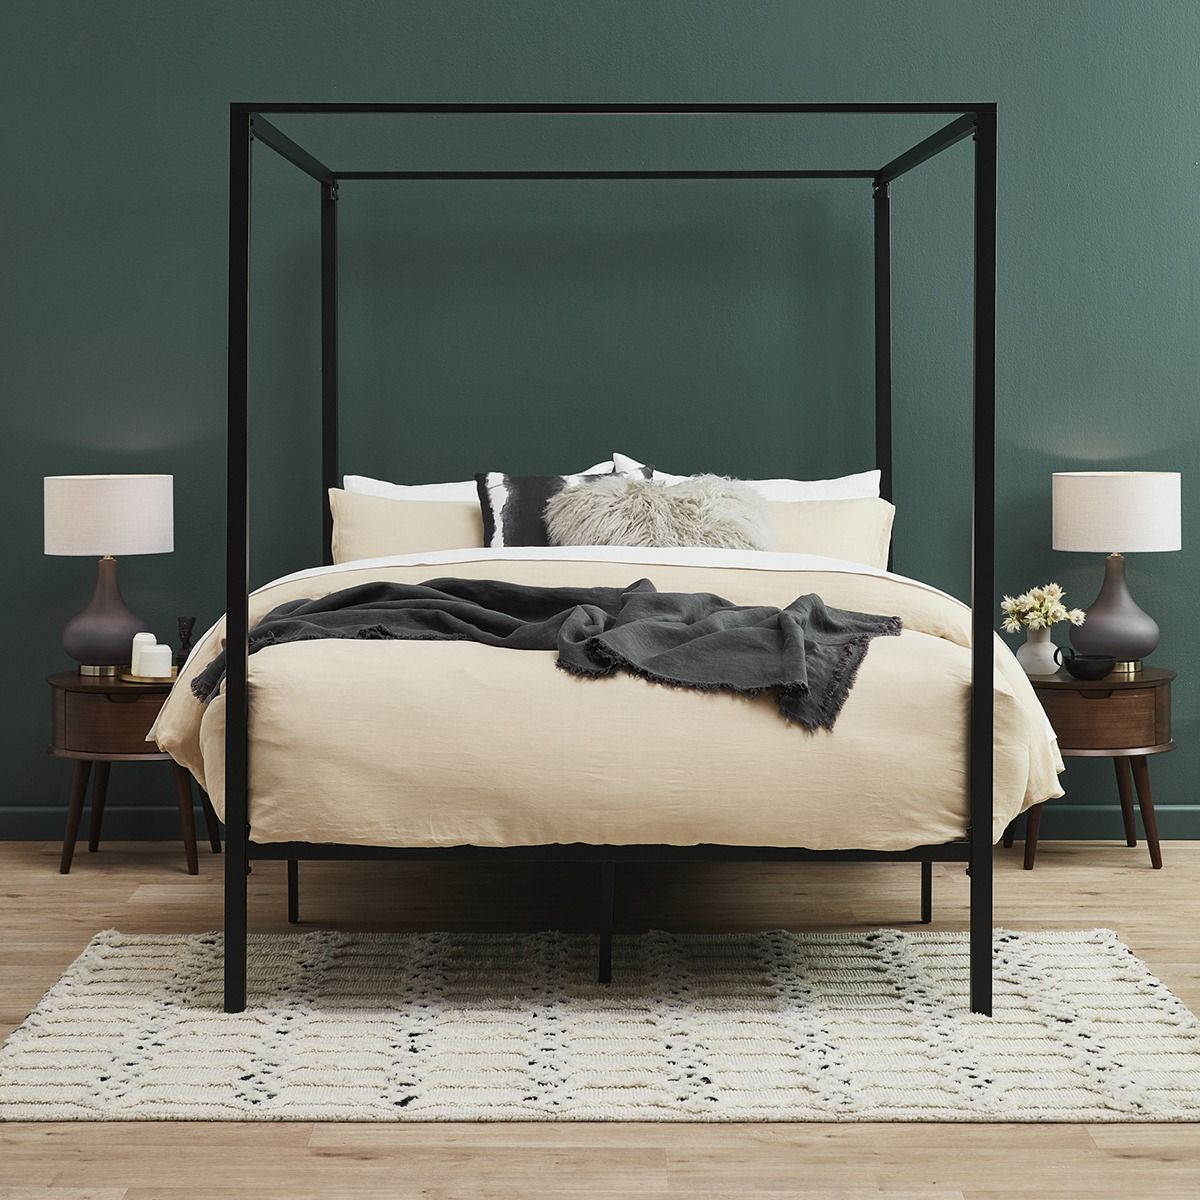 Make a statement in your bedroom with this four poster bed